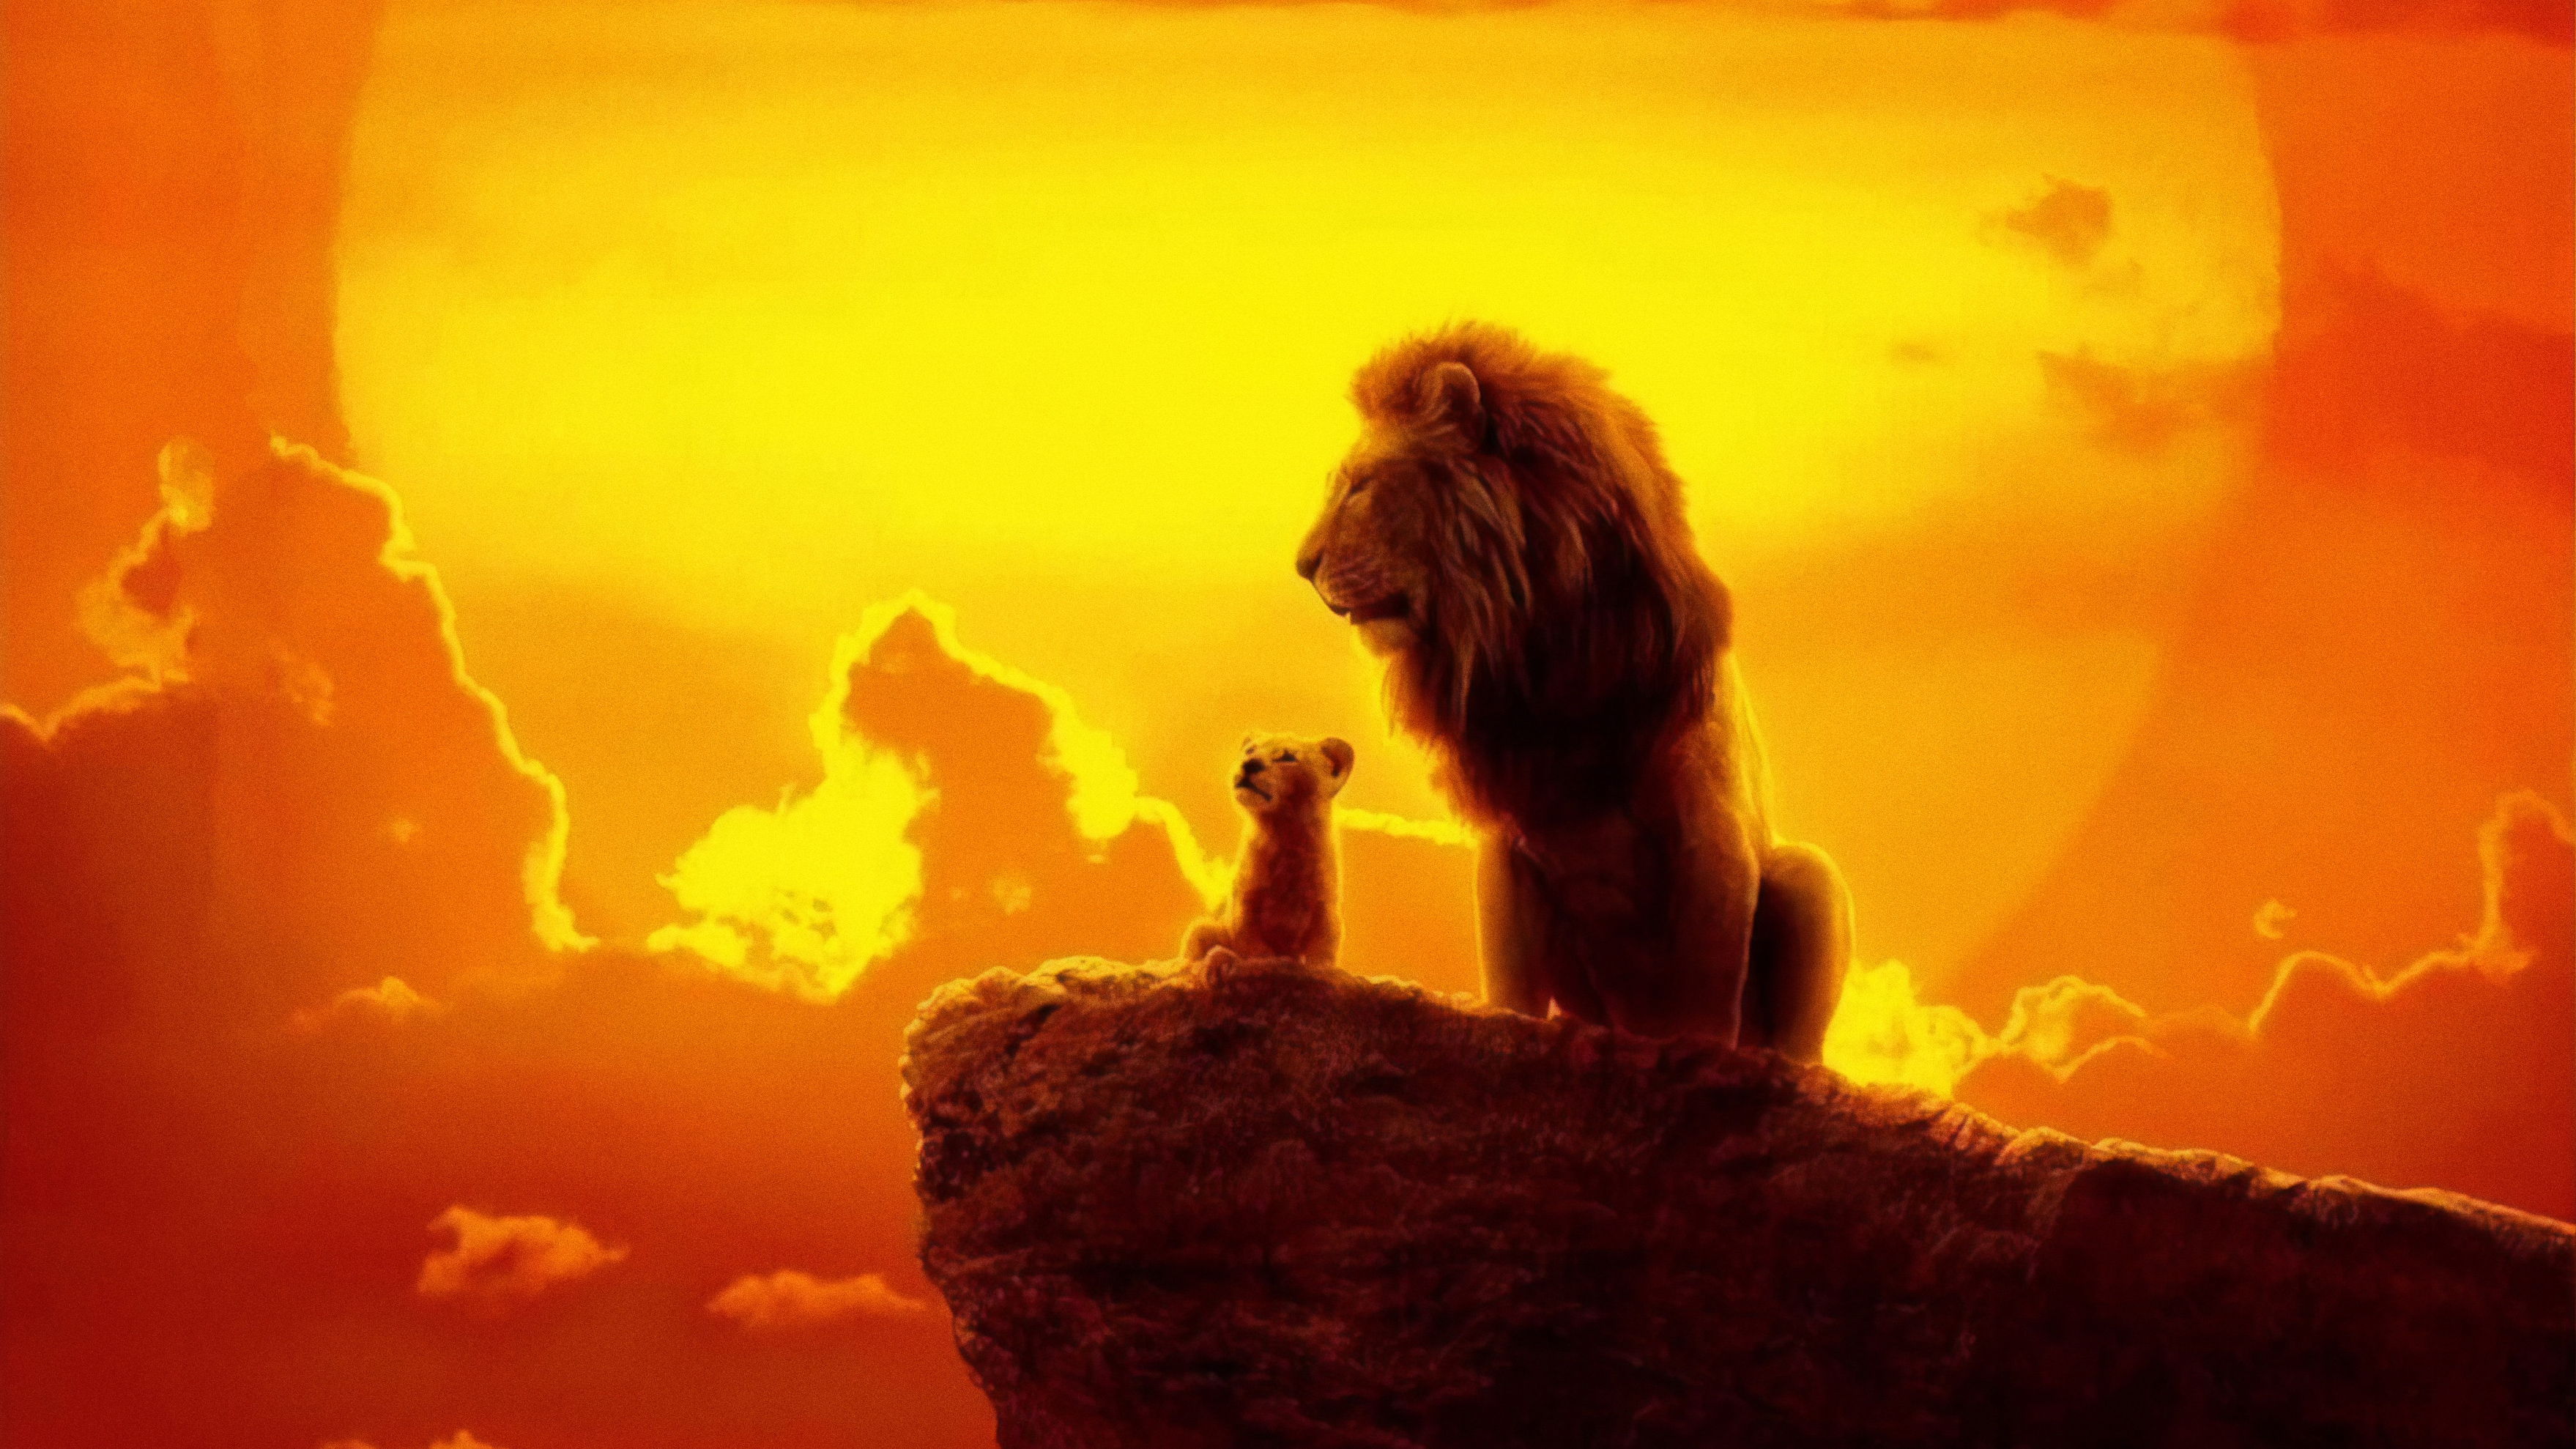 The Lion King 2019 4k, HD Movies, 4k Wallpapers, Images